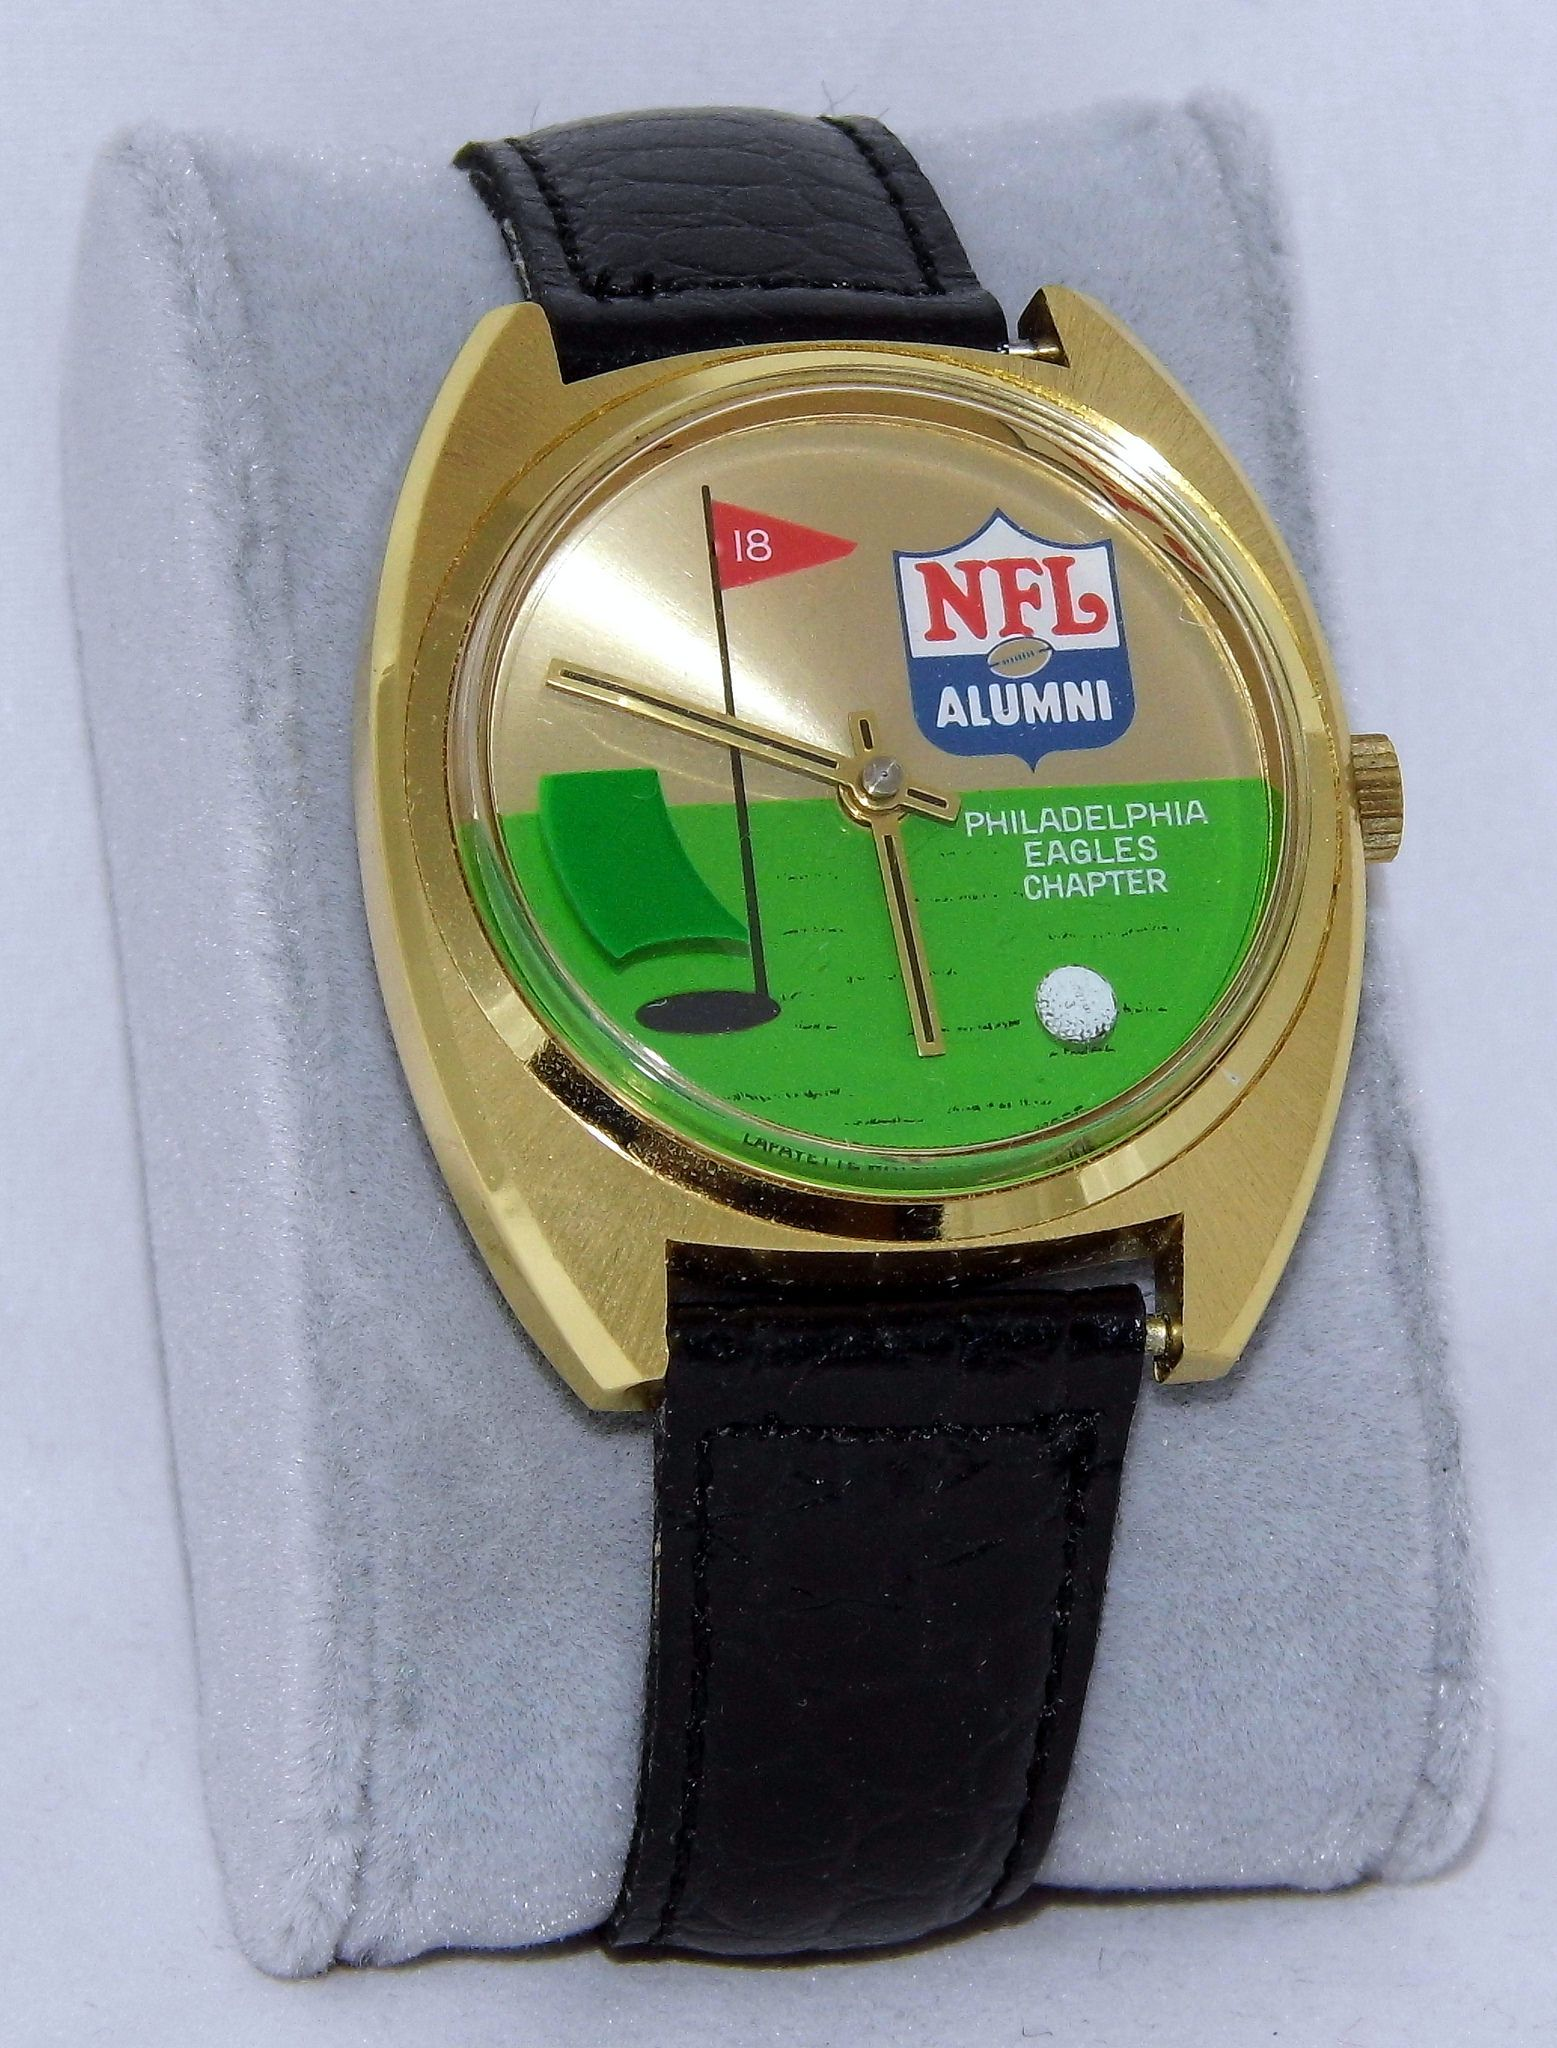 Vintage Nfl Alumni Golf Tournament Watch Philadelphia Eagles Chapter Swiss Made By The Lafayette Watch Company Manual Wind Movement Golf Ball Rotates Around Philadelphia Eagles Watch Companies Golf Tournament